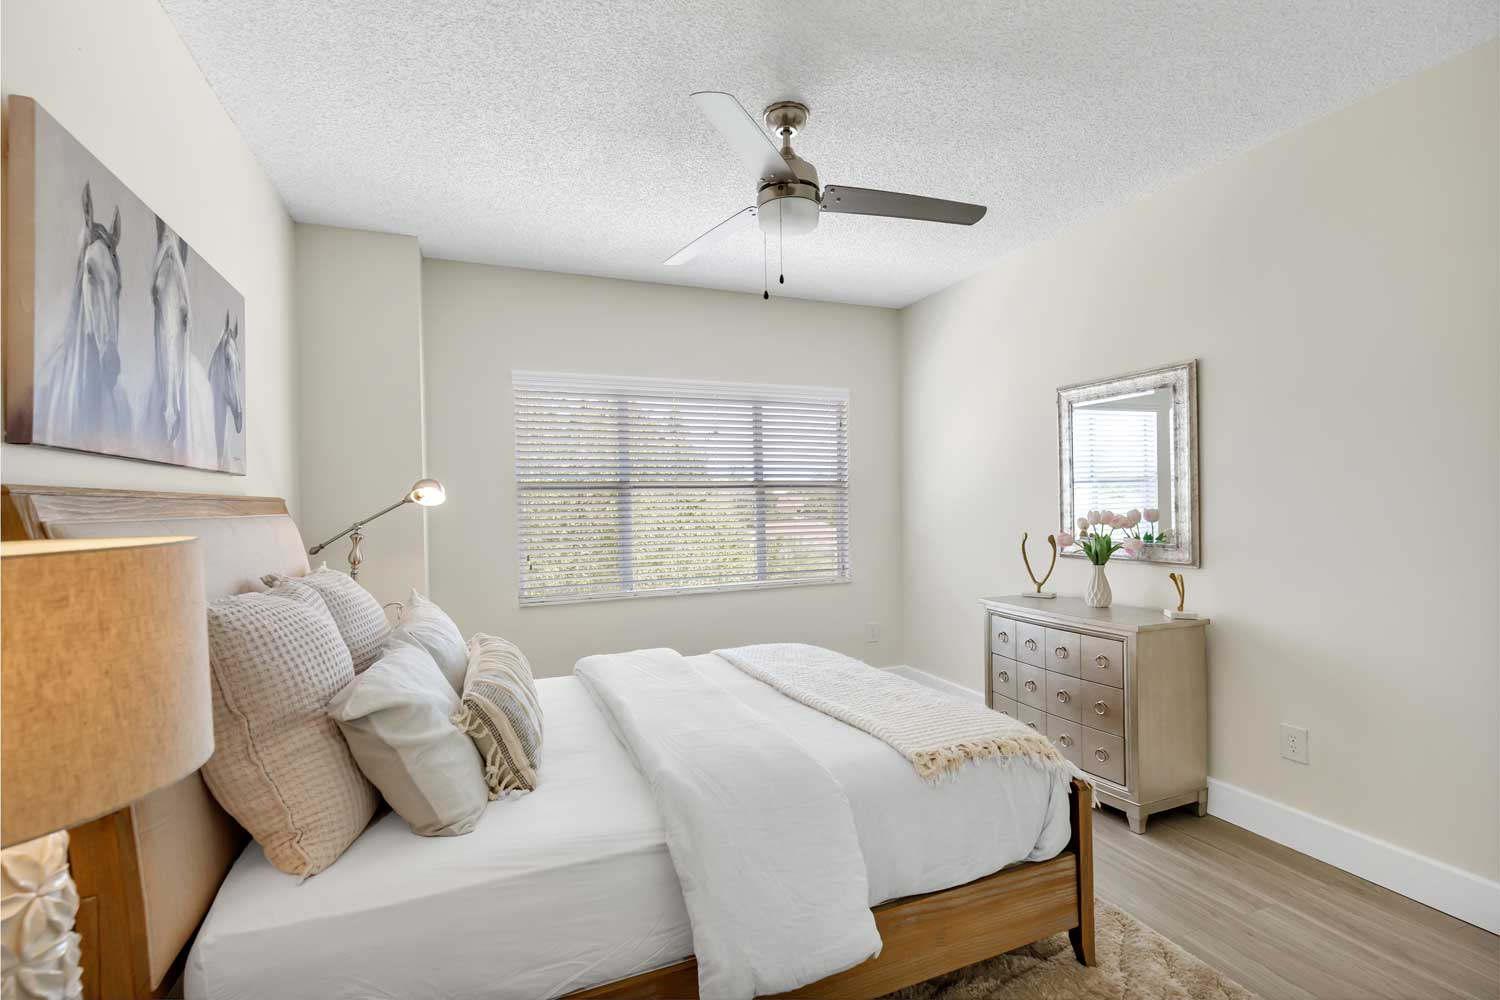 Package Delivery Available at New Castle Lake in Miami, FL